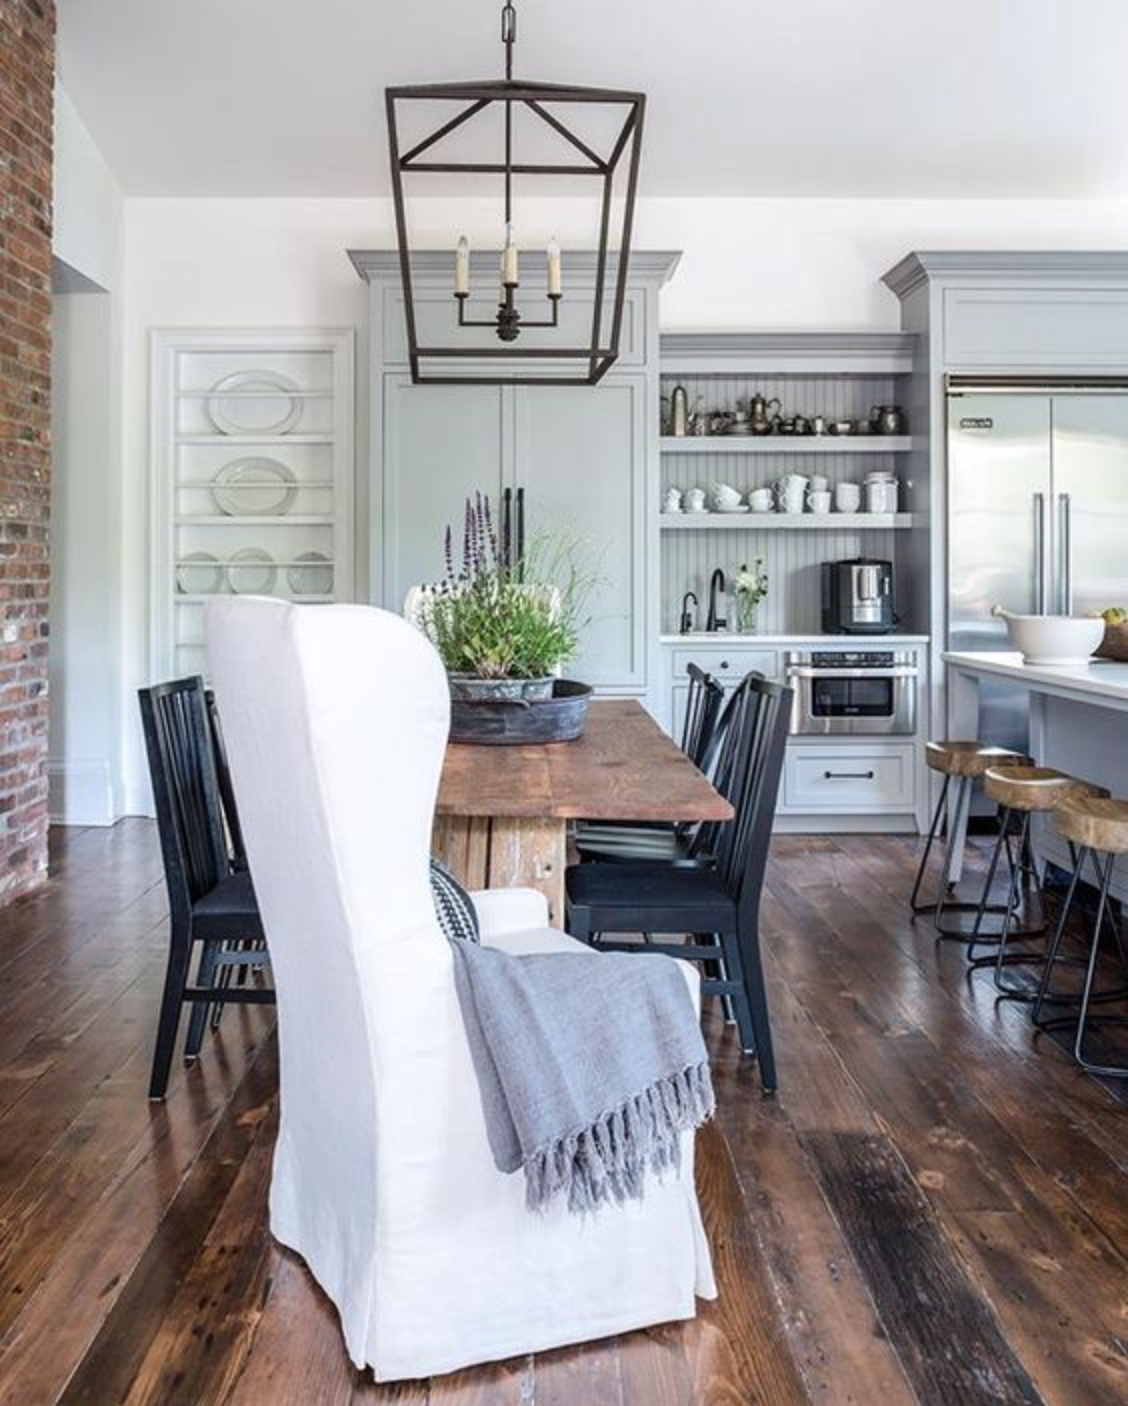 The 25 Most Beautiful Kitchens on Pinterest - Sanctuary Home Decor